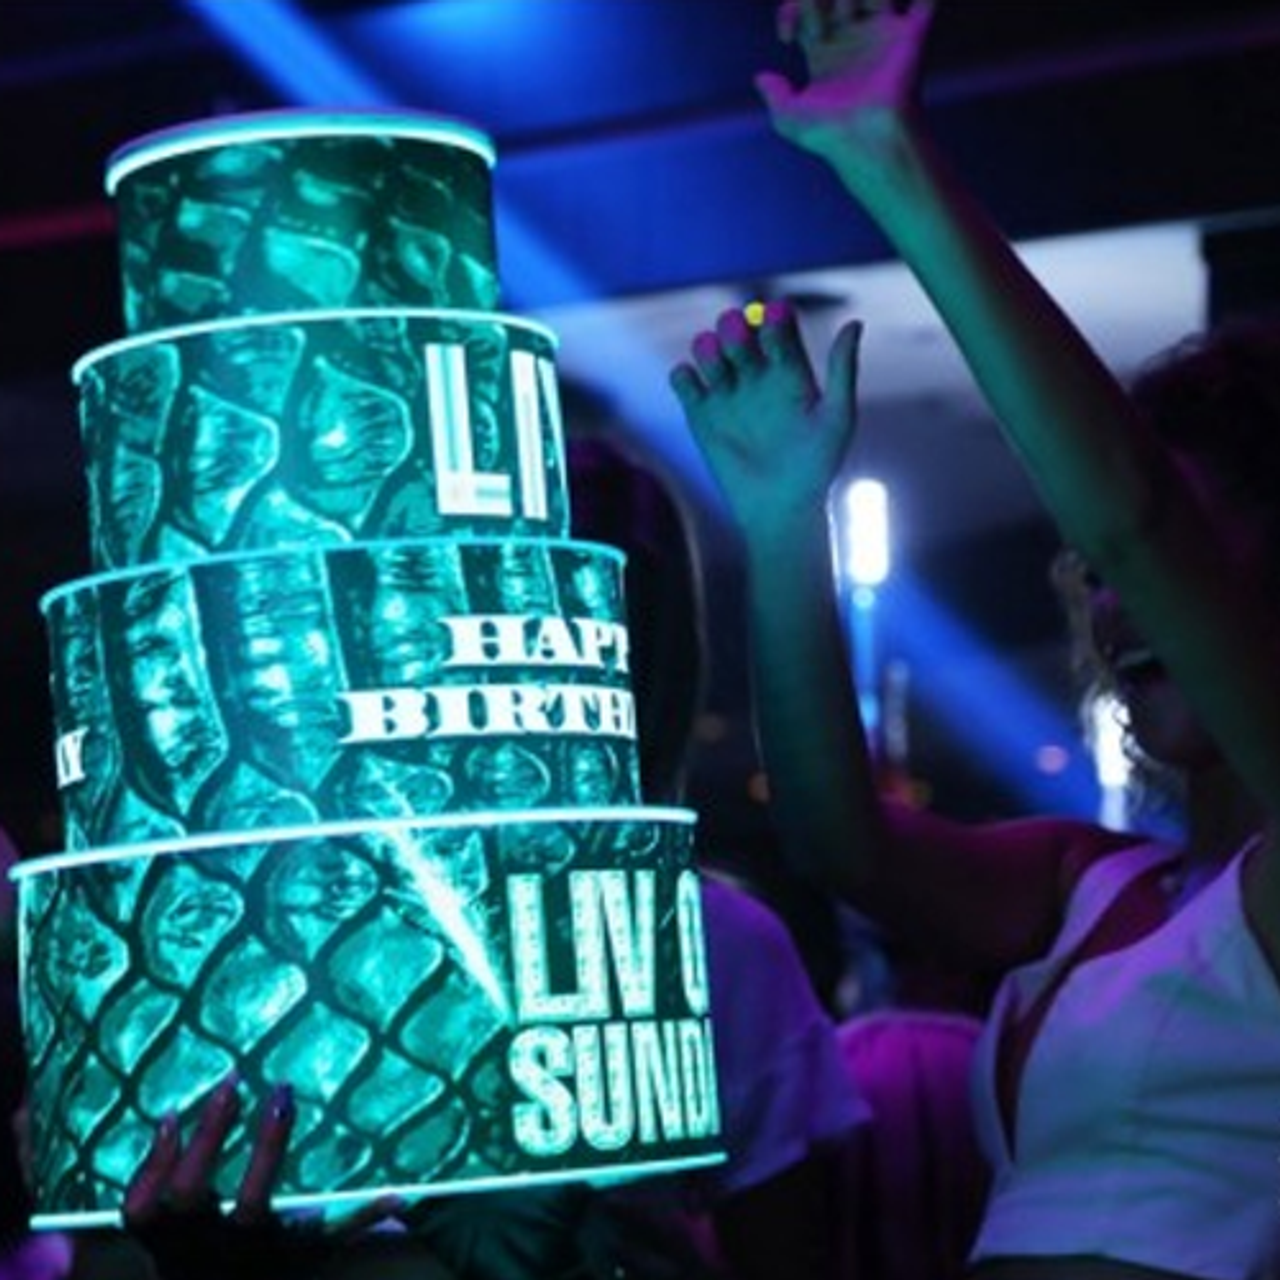 LED, Birthday, Cake, LEDCake, LED Cake, Light up, illuminated, custom, Venue,Logo,LIV,hypemaker,Miami,Beach,South Beach